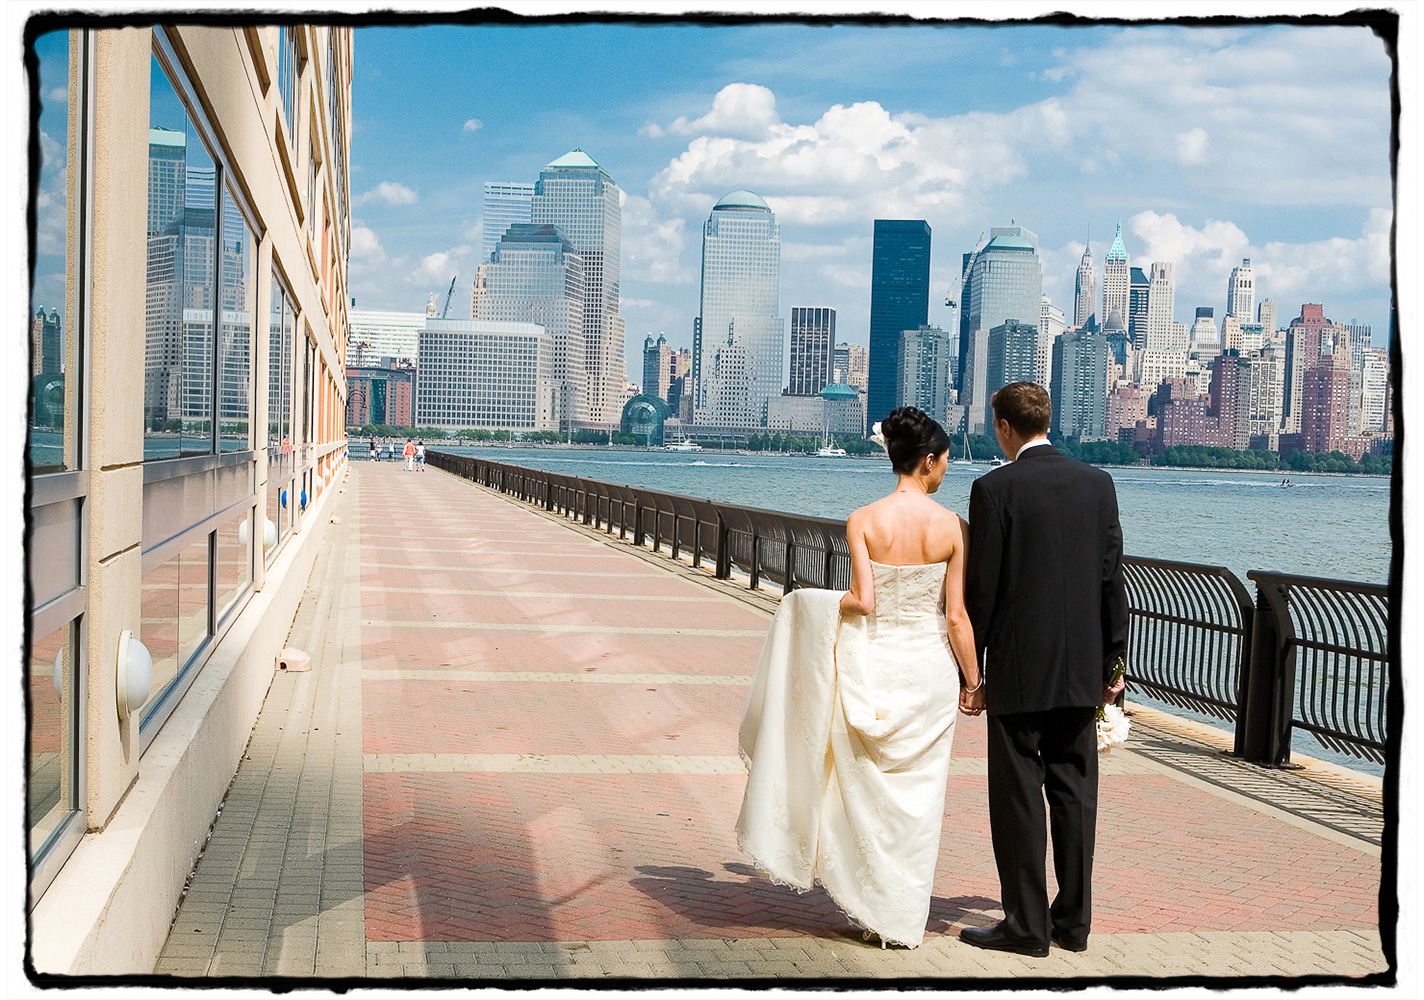 The promenade by the Hyatt in Jersey City offers stunning views of the skyline.